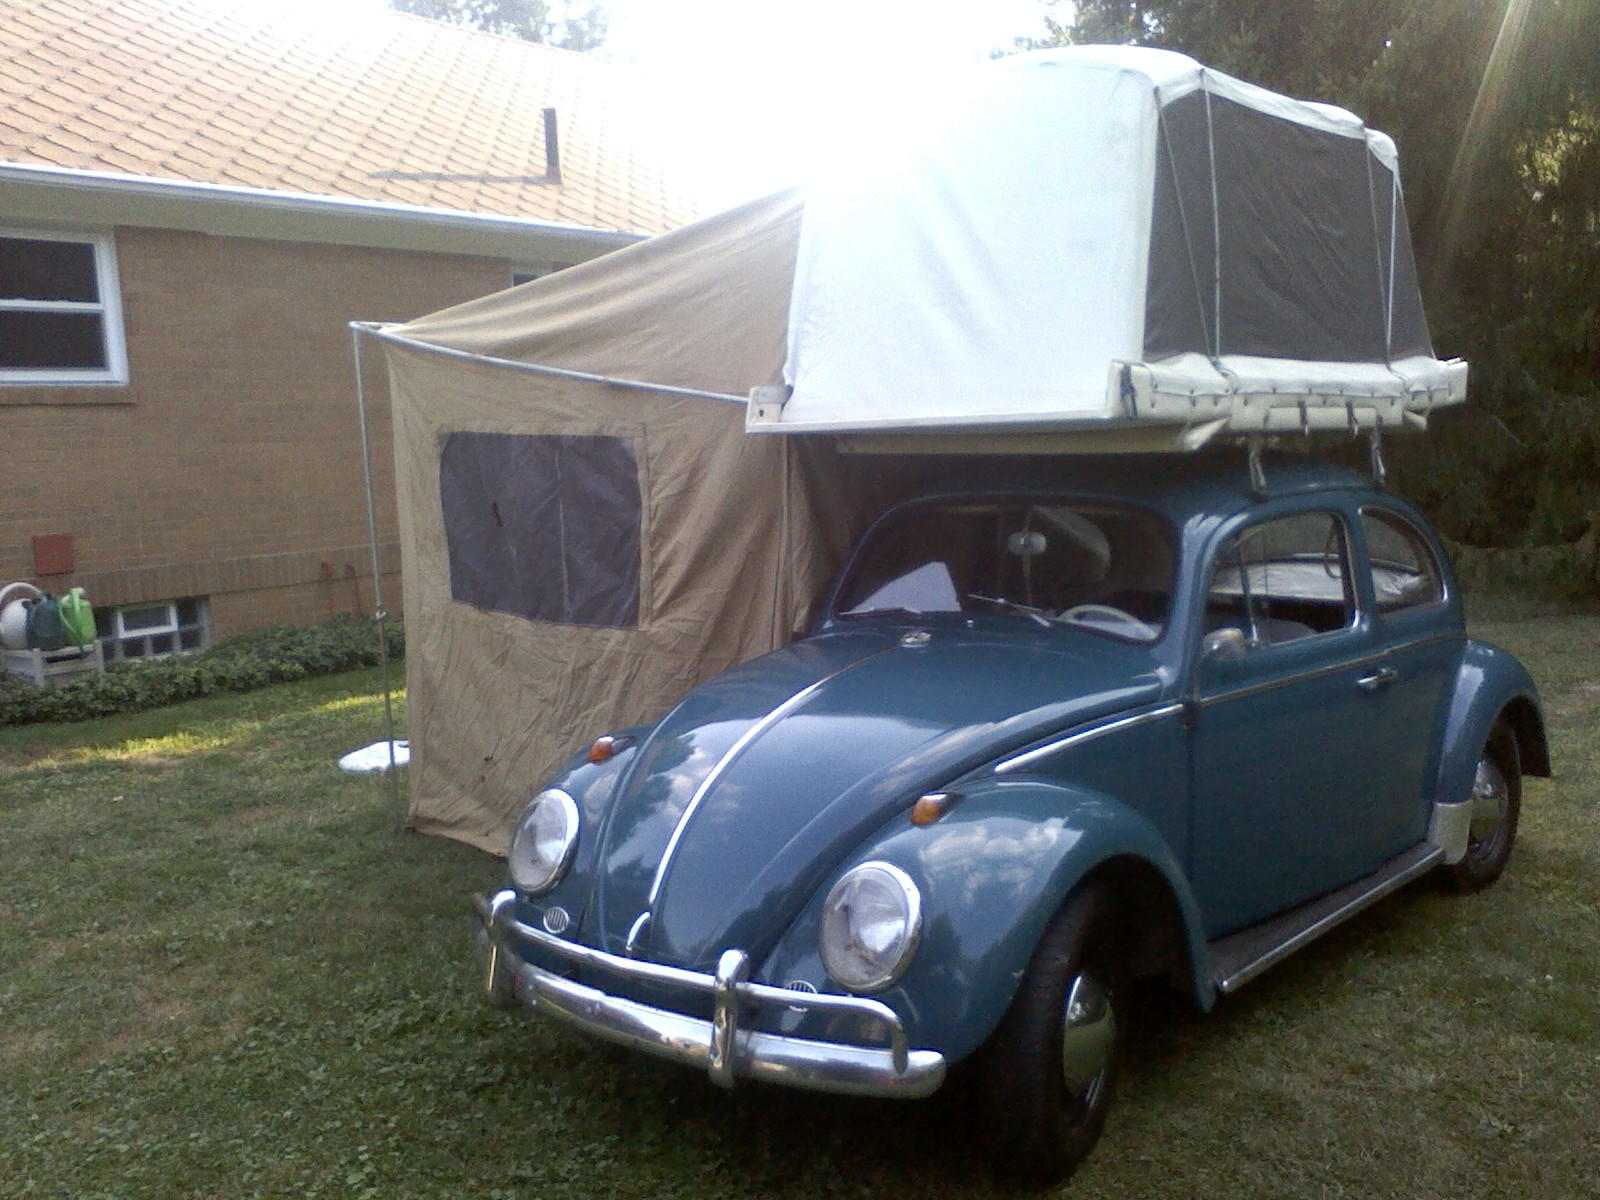 Image may have been reduced in size. Click image to view fullscreen. : vw tents - memphite.com